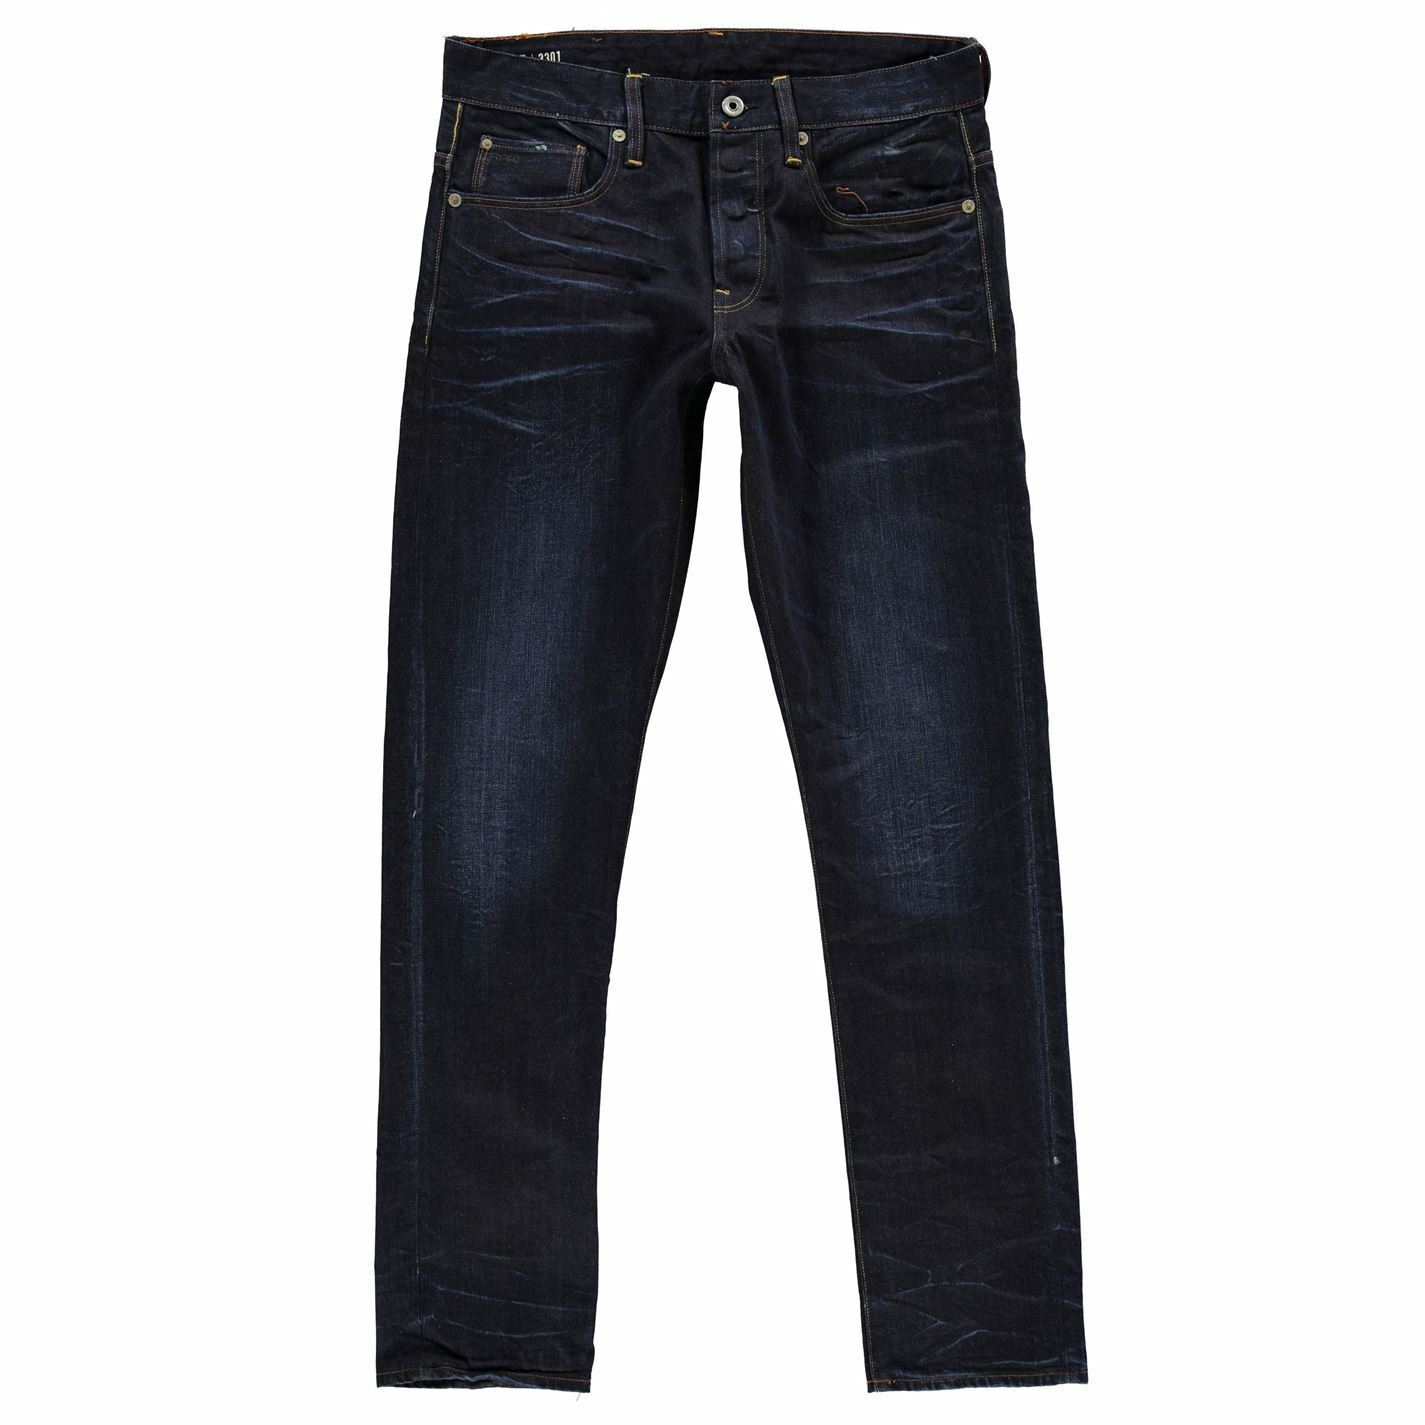 G STAR 3301 Tapered Jeans  Brand New WithTag) W 32 L 32 RRP .00